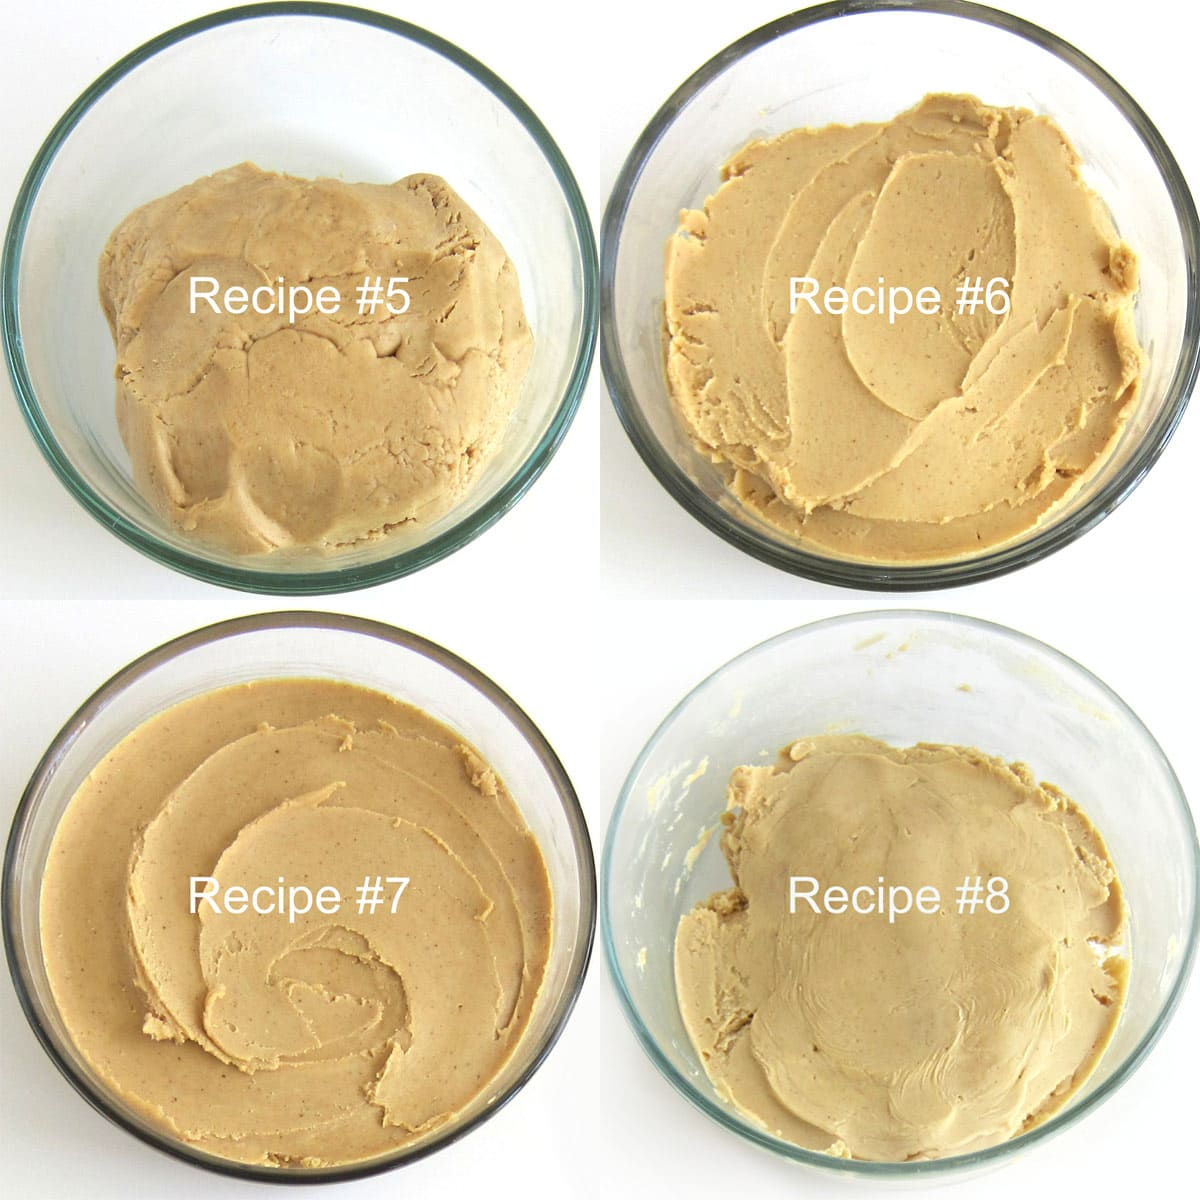 Four bowls of peanut butter fudge used to make peanut butter balls in a taste test.